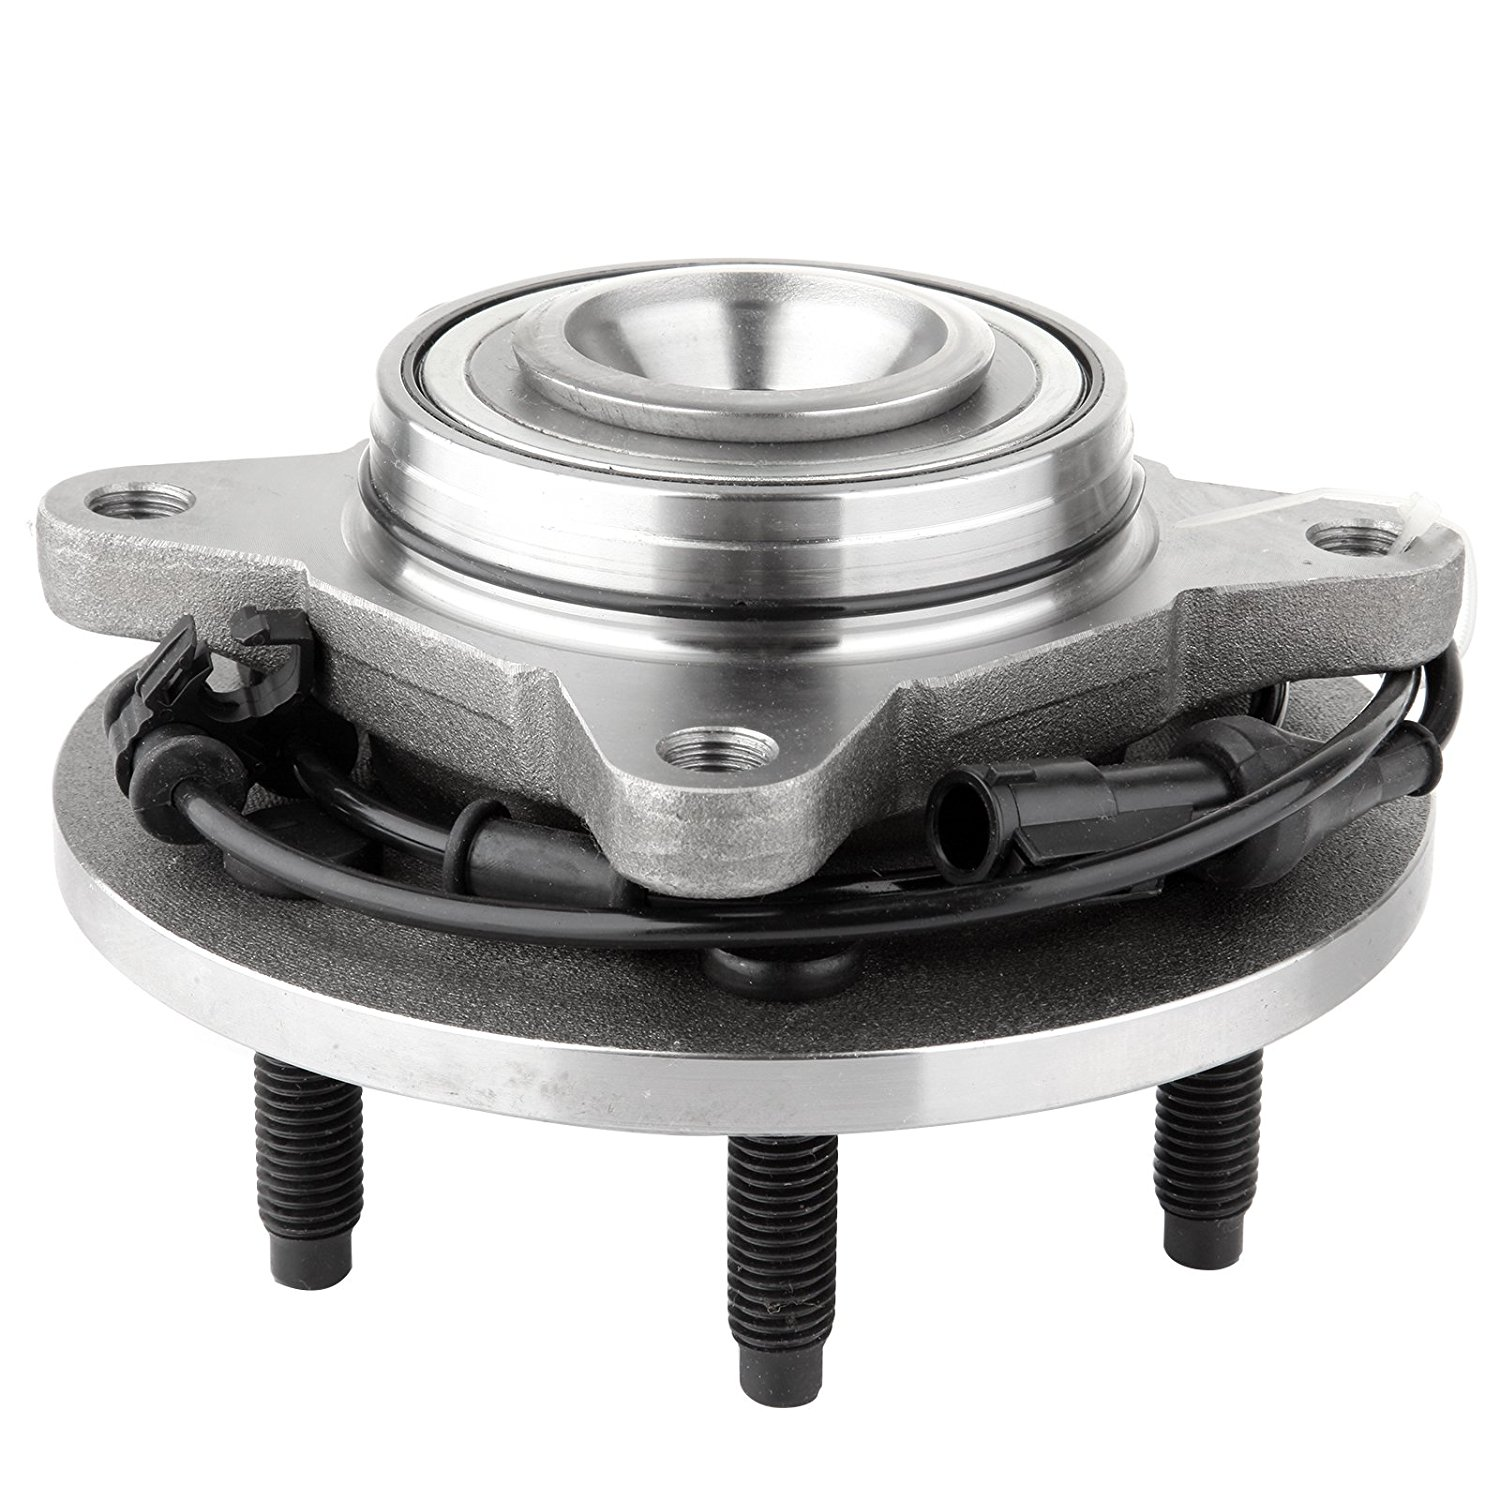 ECCPP New Brand Front Wheel Hub Bearing Fits Ford Expedition 02-06 Lincoln Navigator 03-06 2WD